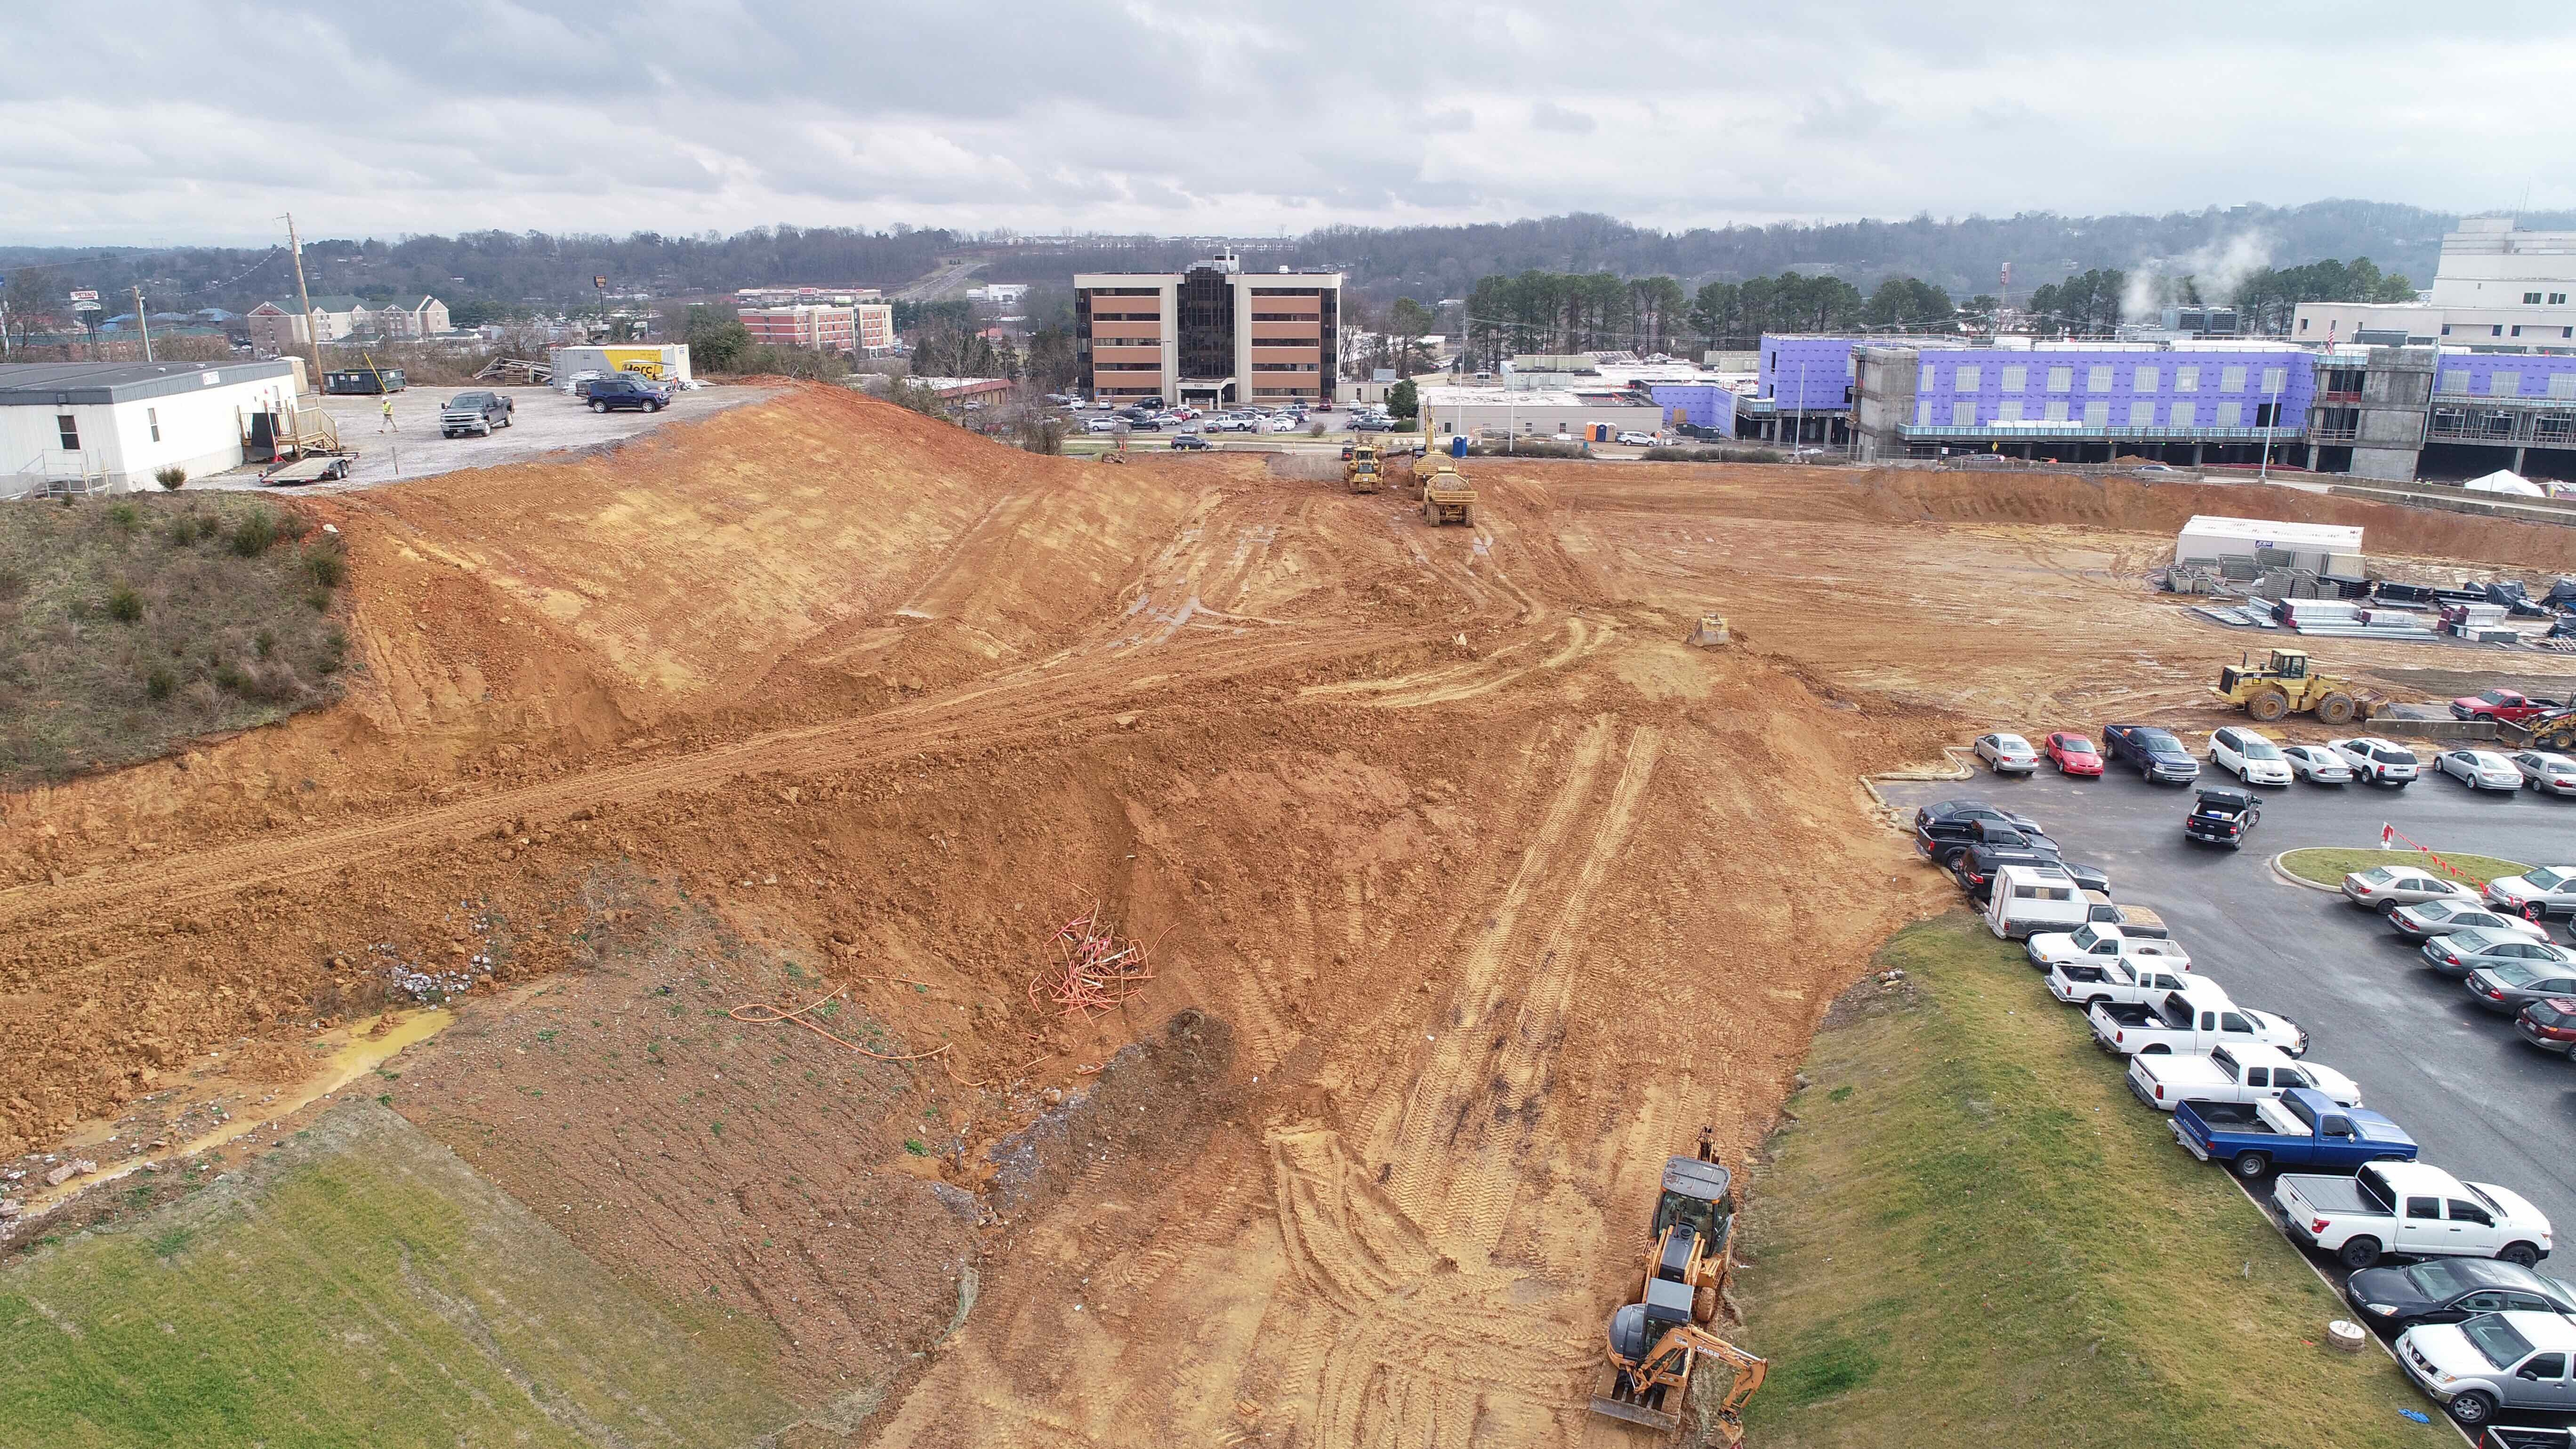 View of dirt removal pile on construction site.